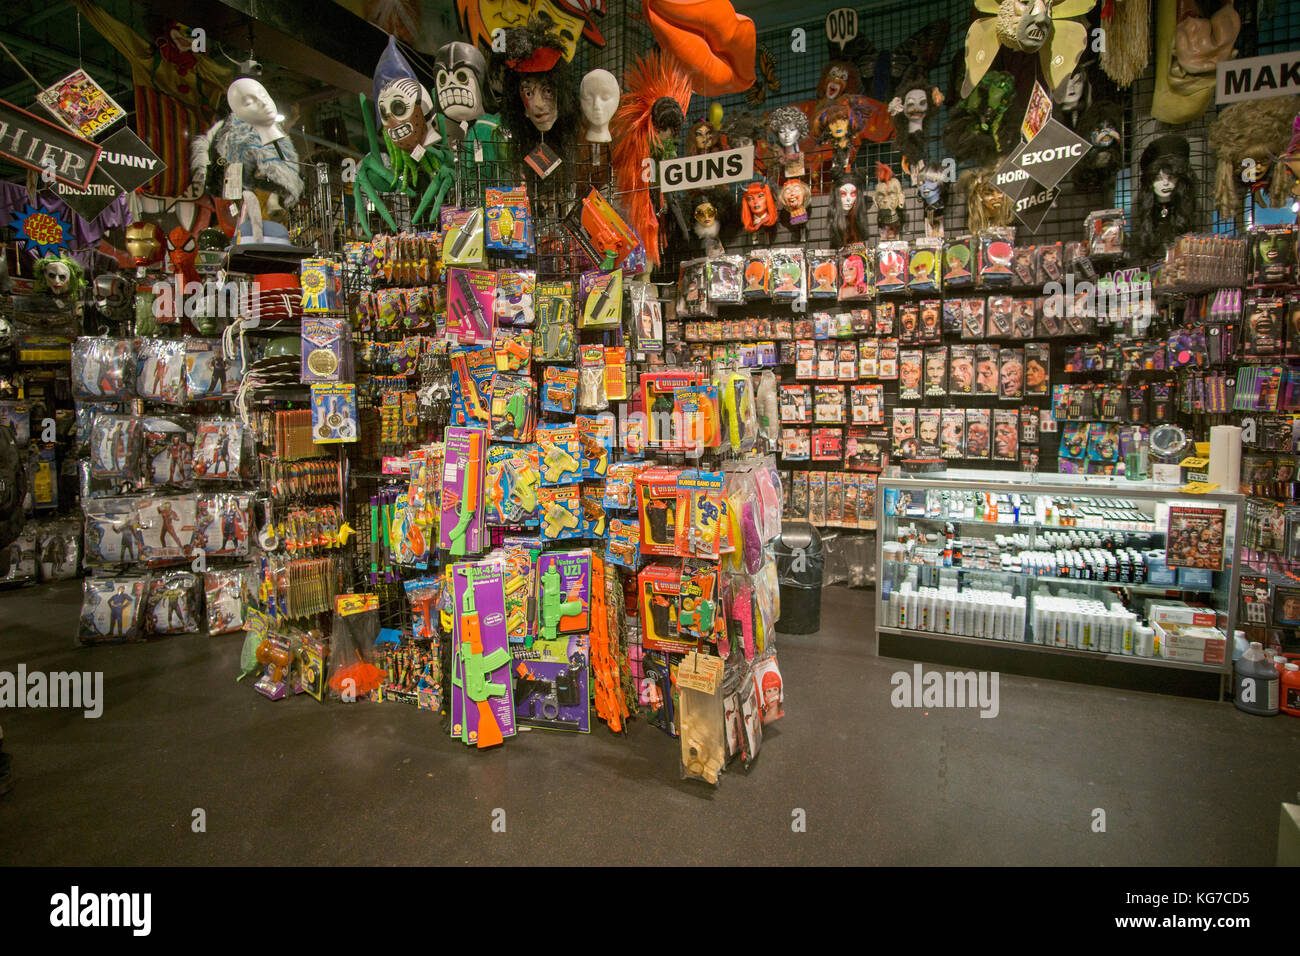 Halloween Adventure.Inside The Halloween Adventure Costume Shop On Broadway In Greenwich